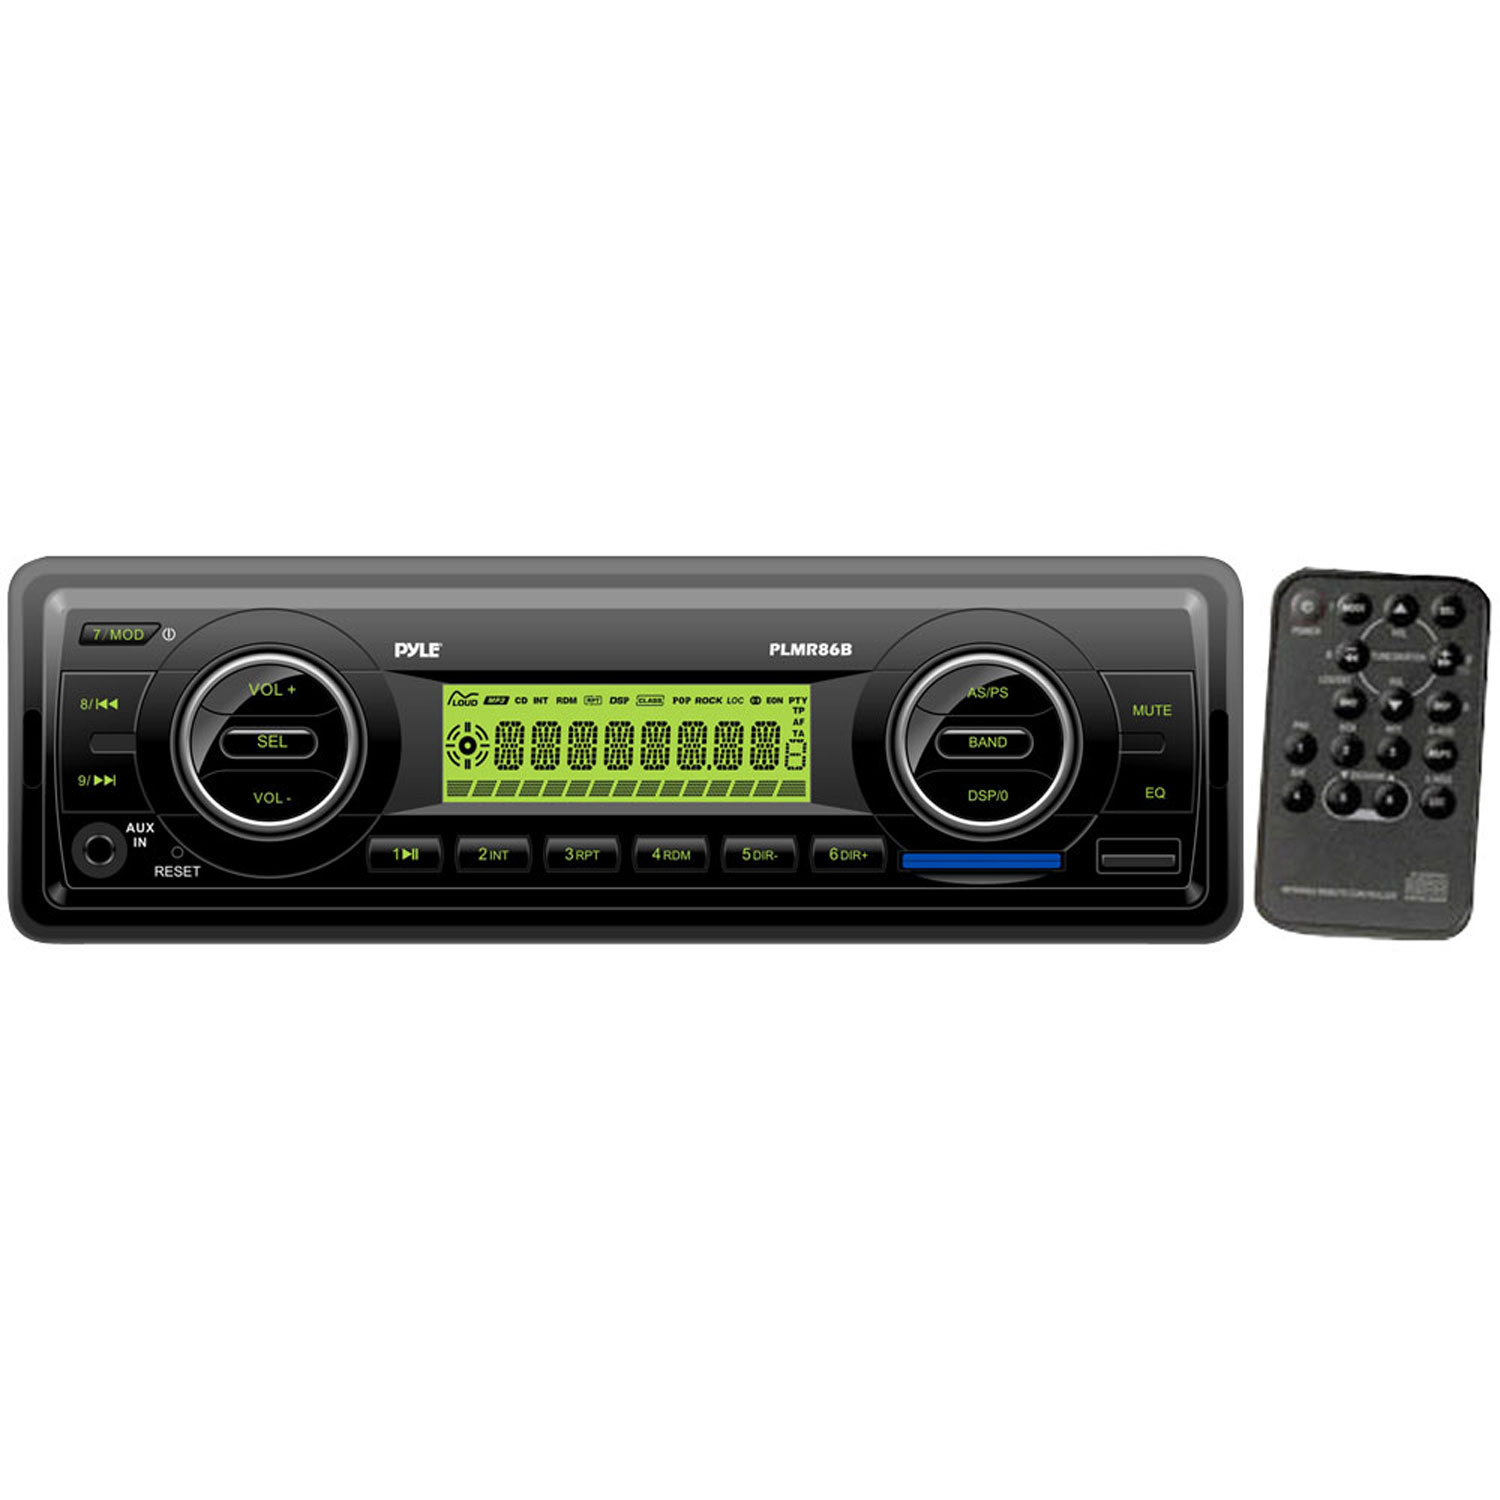 Pyle AM/FM-MPX Electronic Tunning Radio w/USB/SD/MMC (BLACK COLOR UNIT)